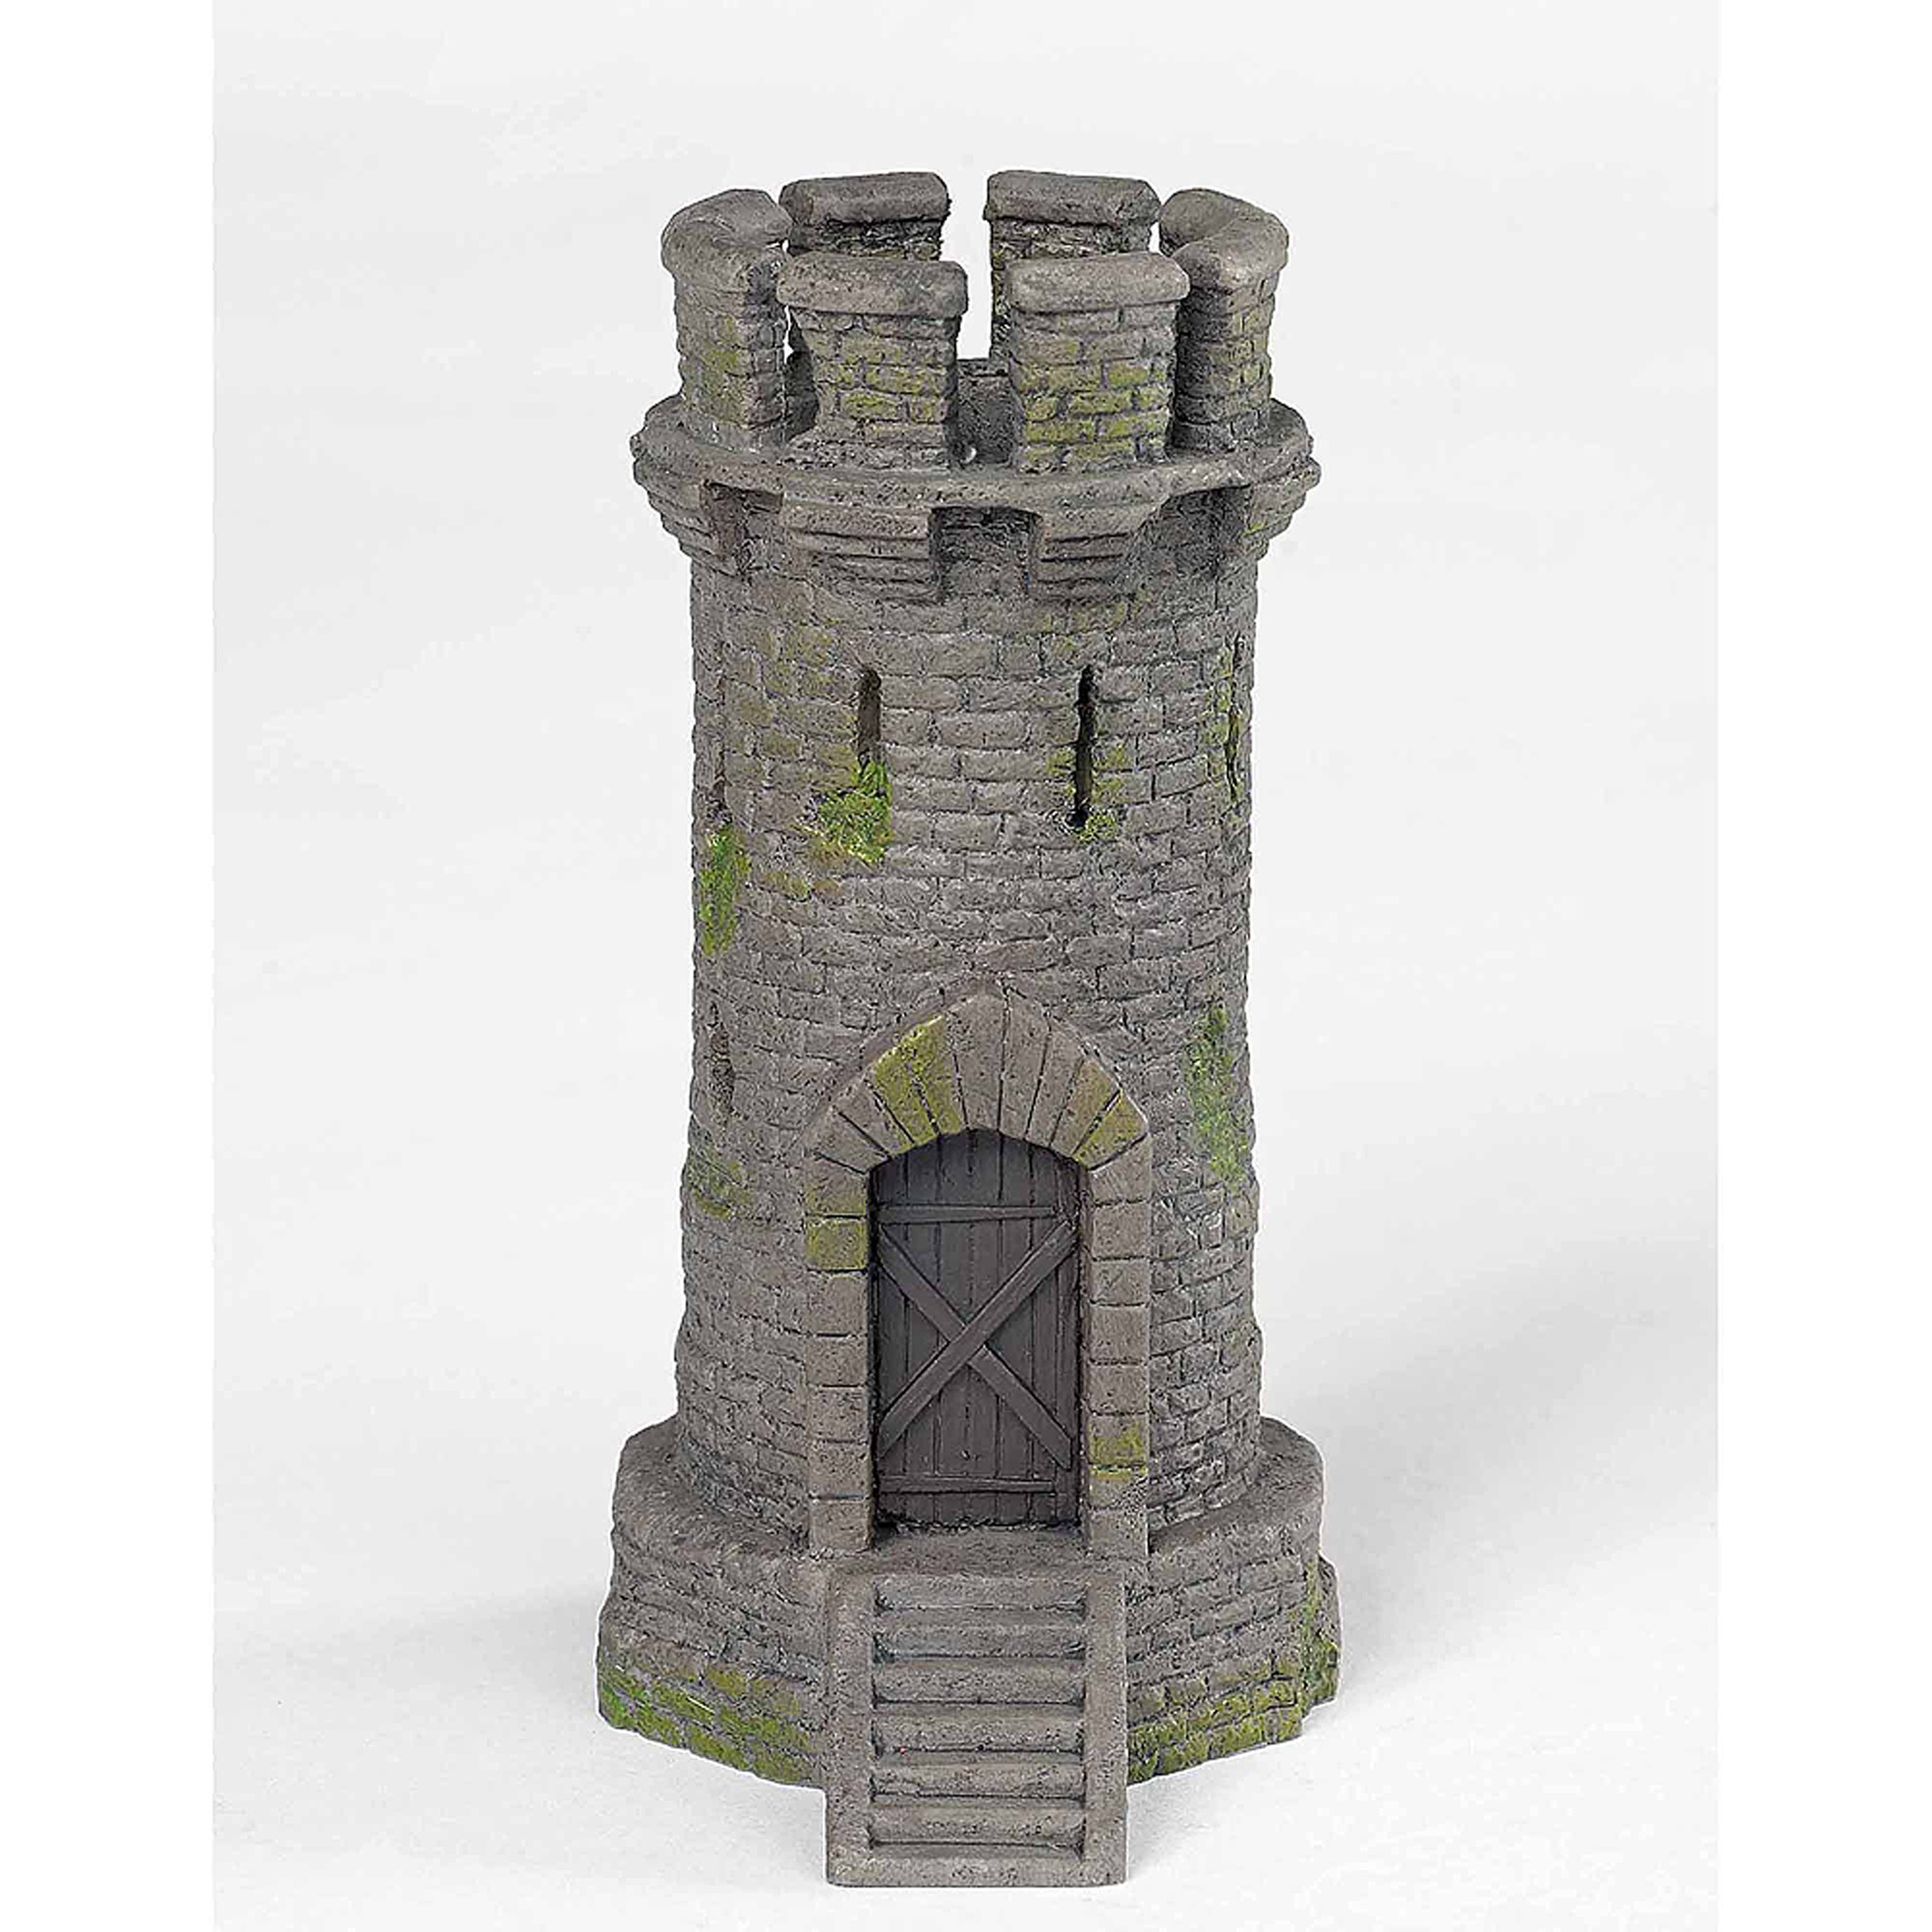 Bachmann Trains Thomas and Friends Black Loch Folly Resin Building Scenery Item, HO Scale by Bachmann Trains